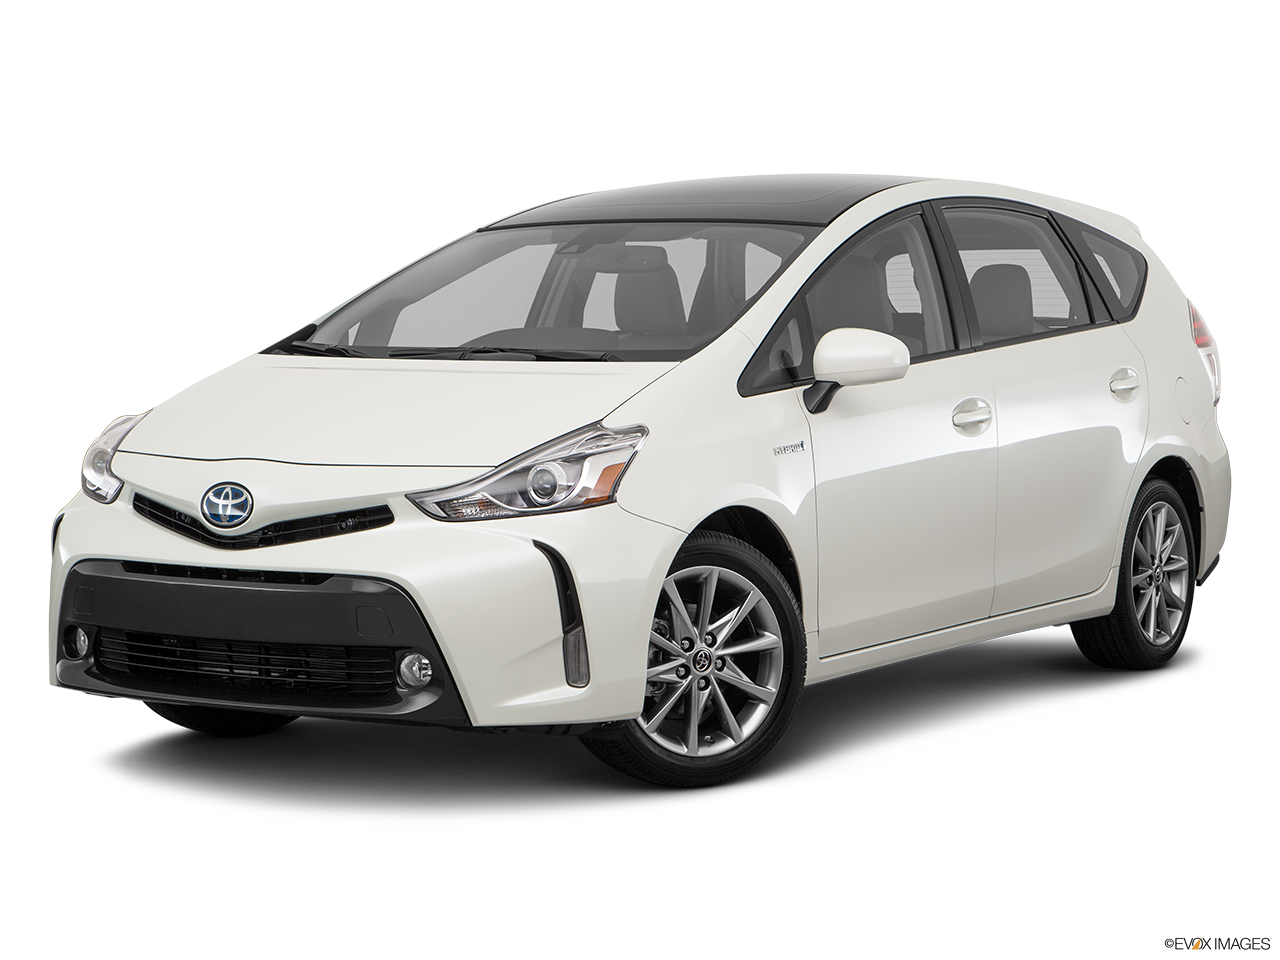 Test Drive A 2017 Toyota Prius v at Toyota of El Cajon near San Diego